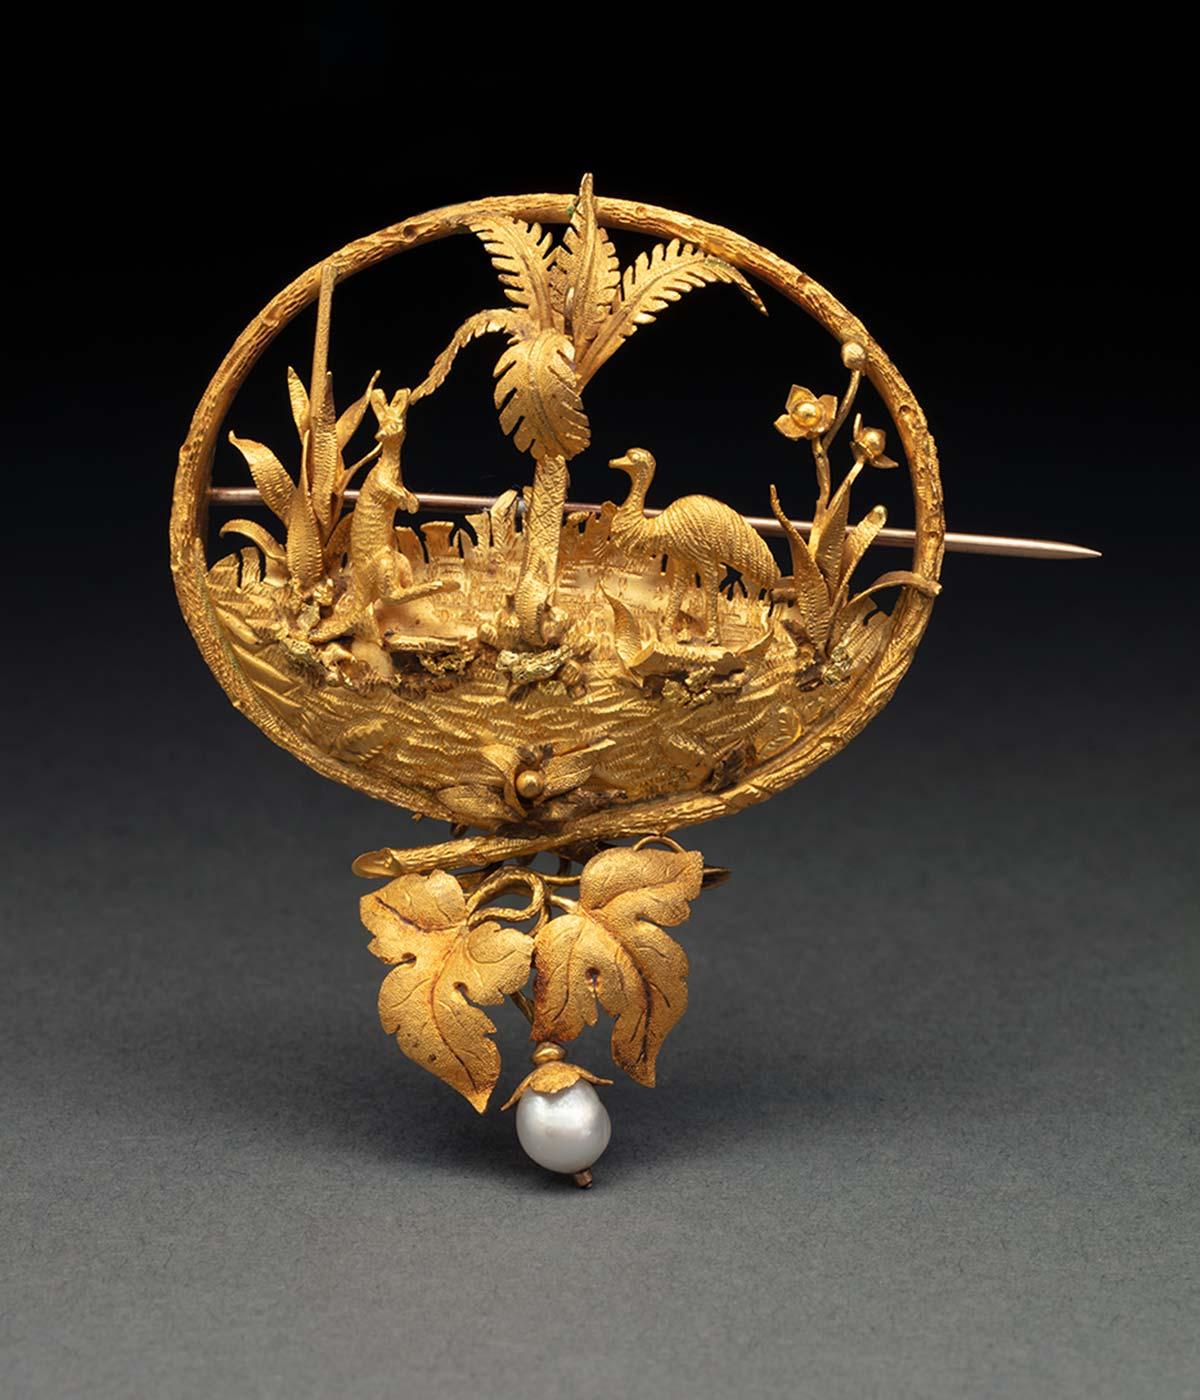 Gold brooch showing a picture of a kangaroo and emu, with a pearl drop at the bottom. - click to view larger image